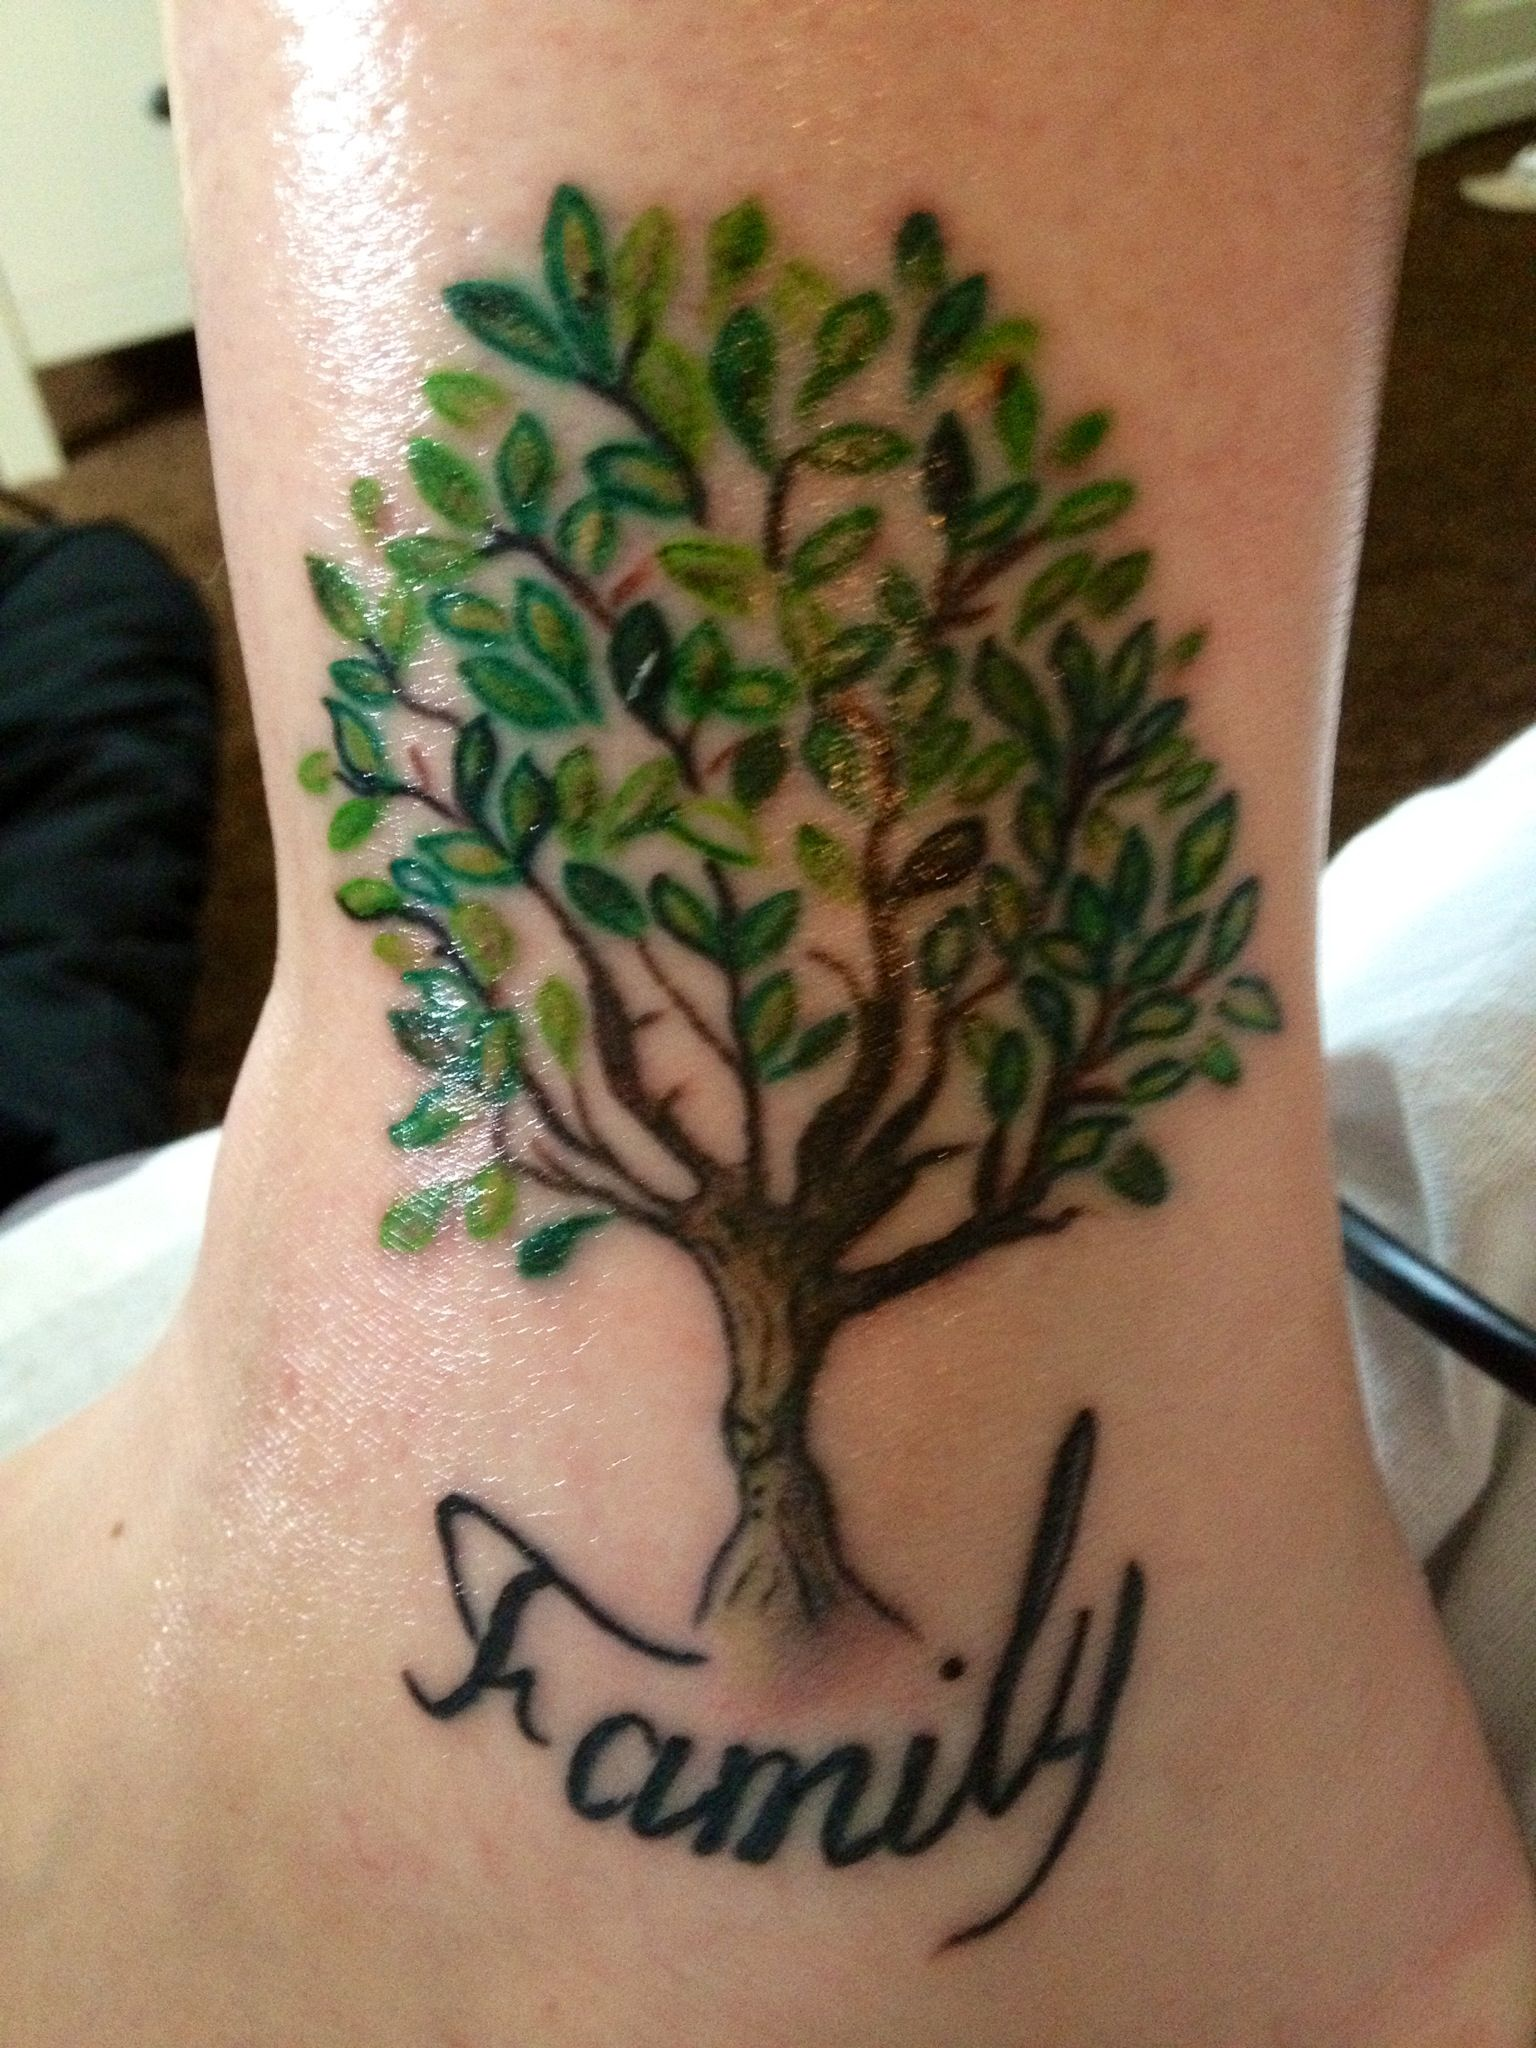 Tattoos for men family my family tree tattoo next tattoo but with names in the branches